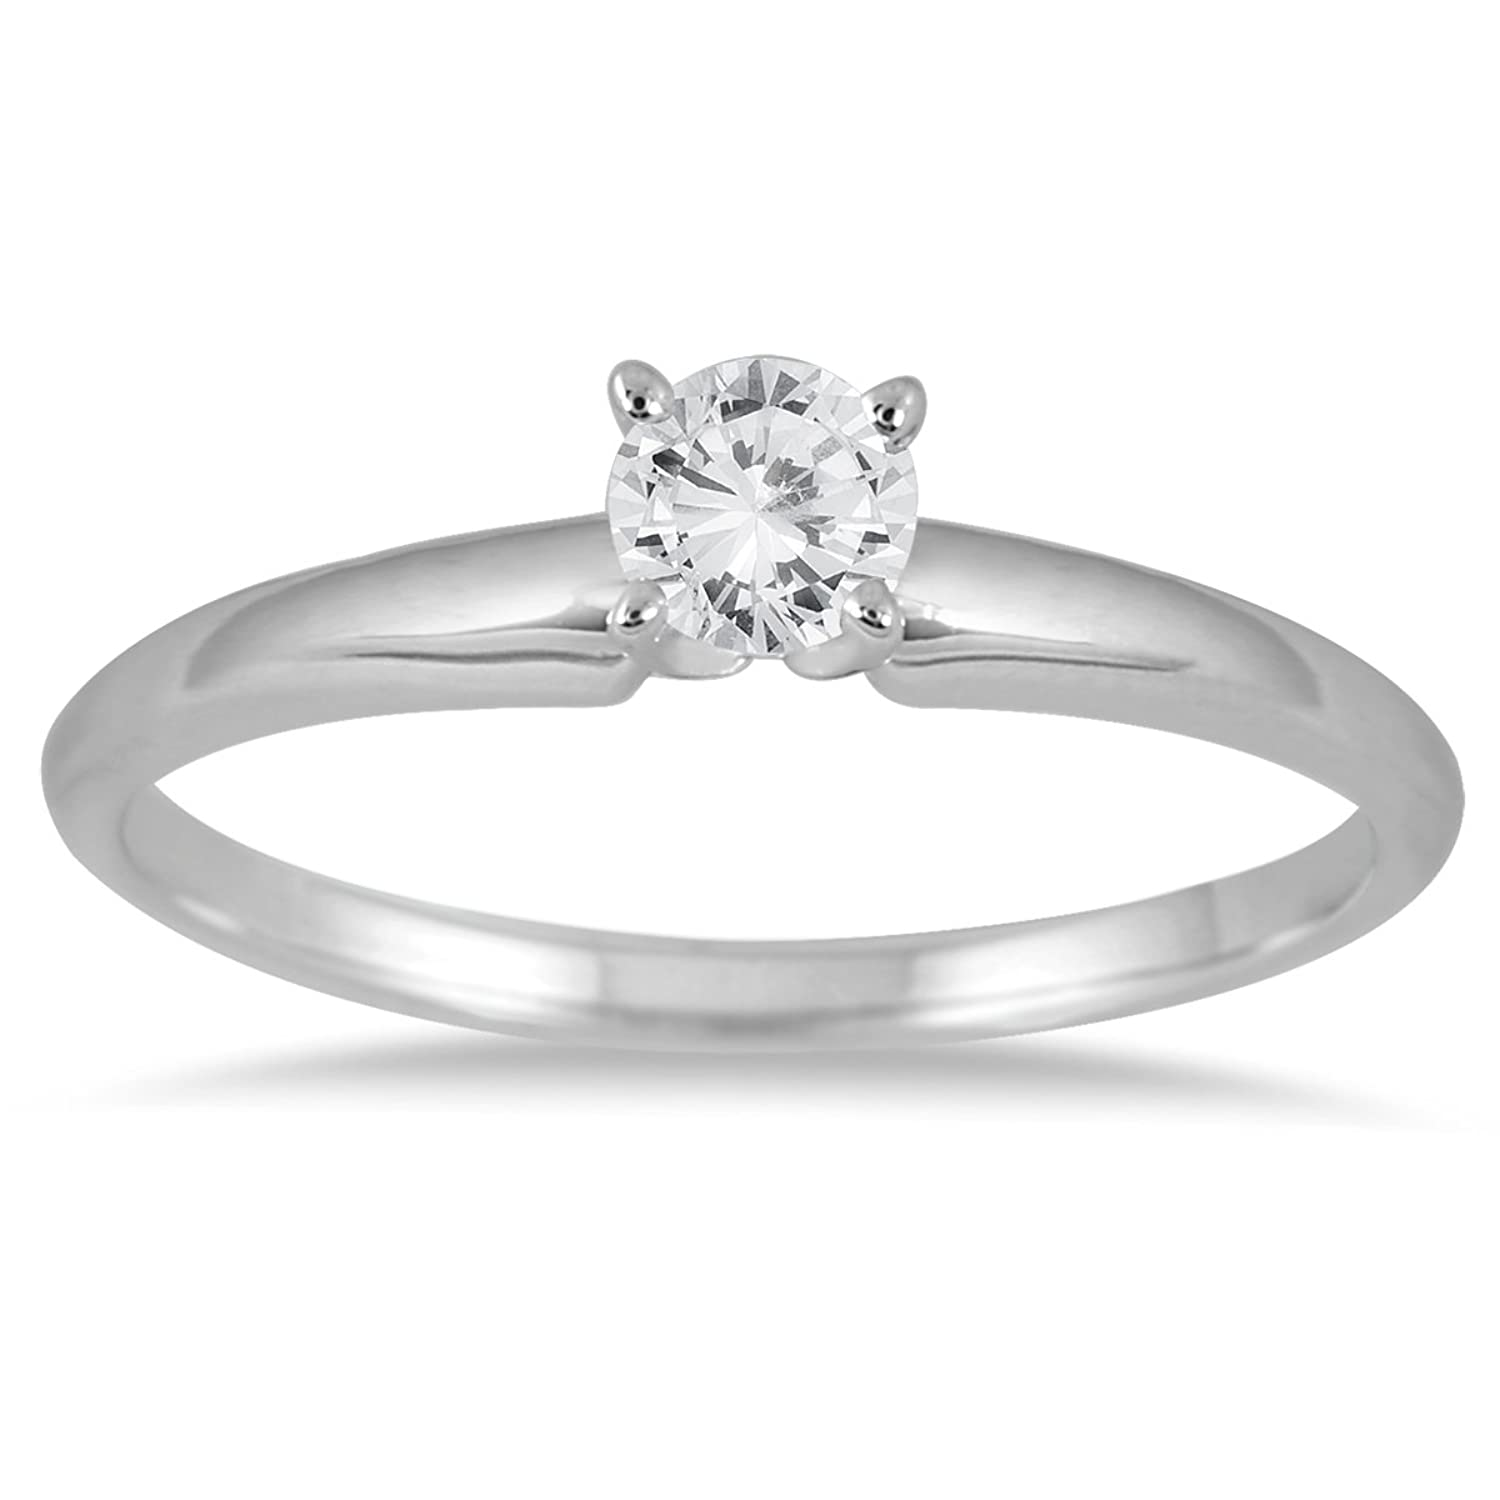 10 Carat Round Diamond Solitaire Ring In 14k White Gold: Engagement  Rings: Jewelry